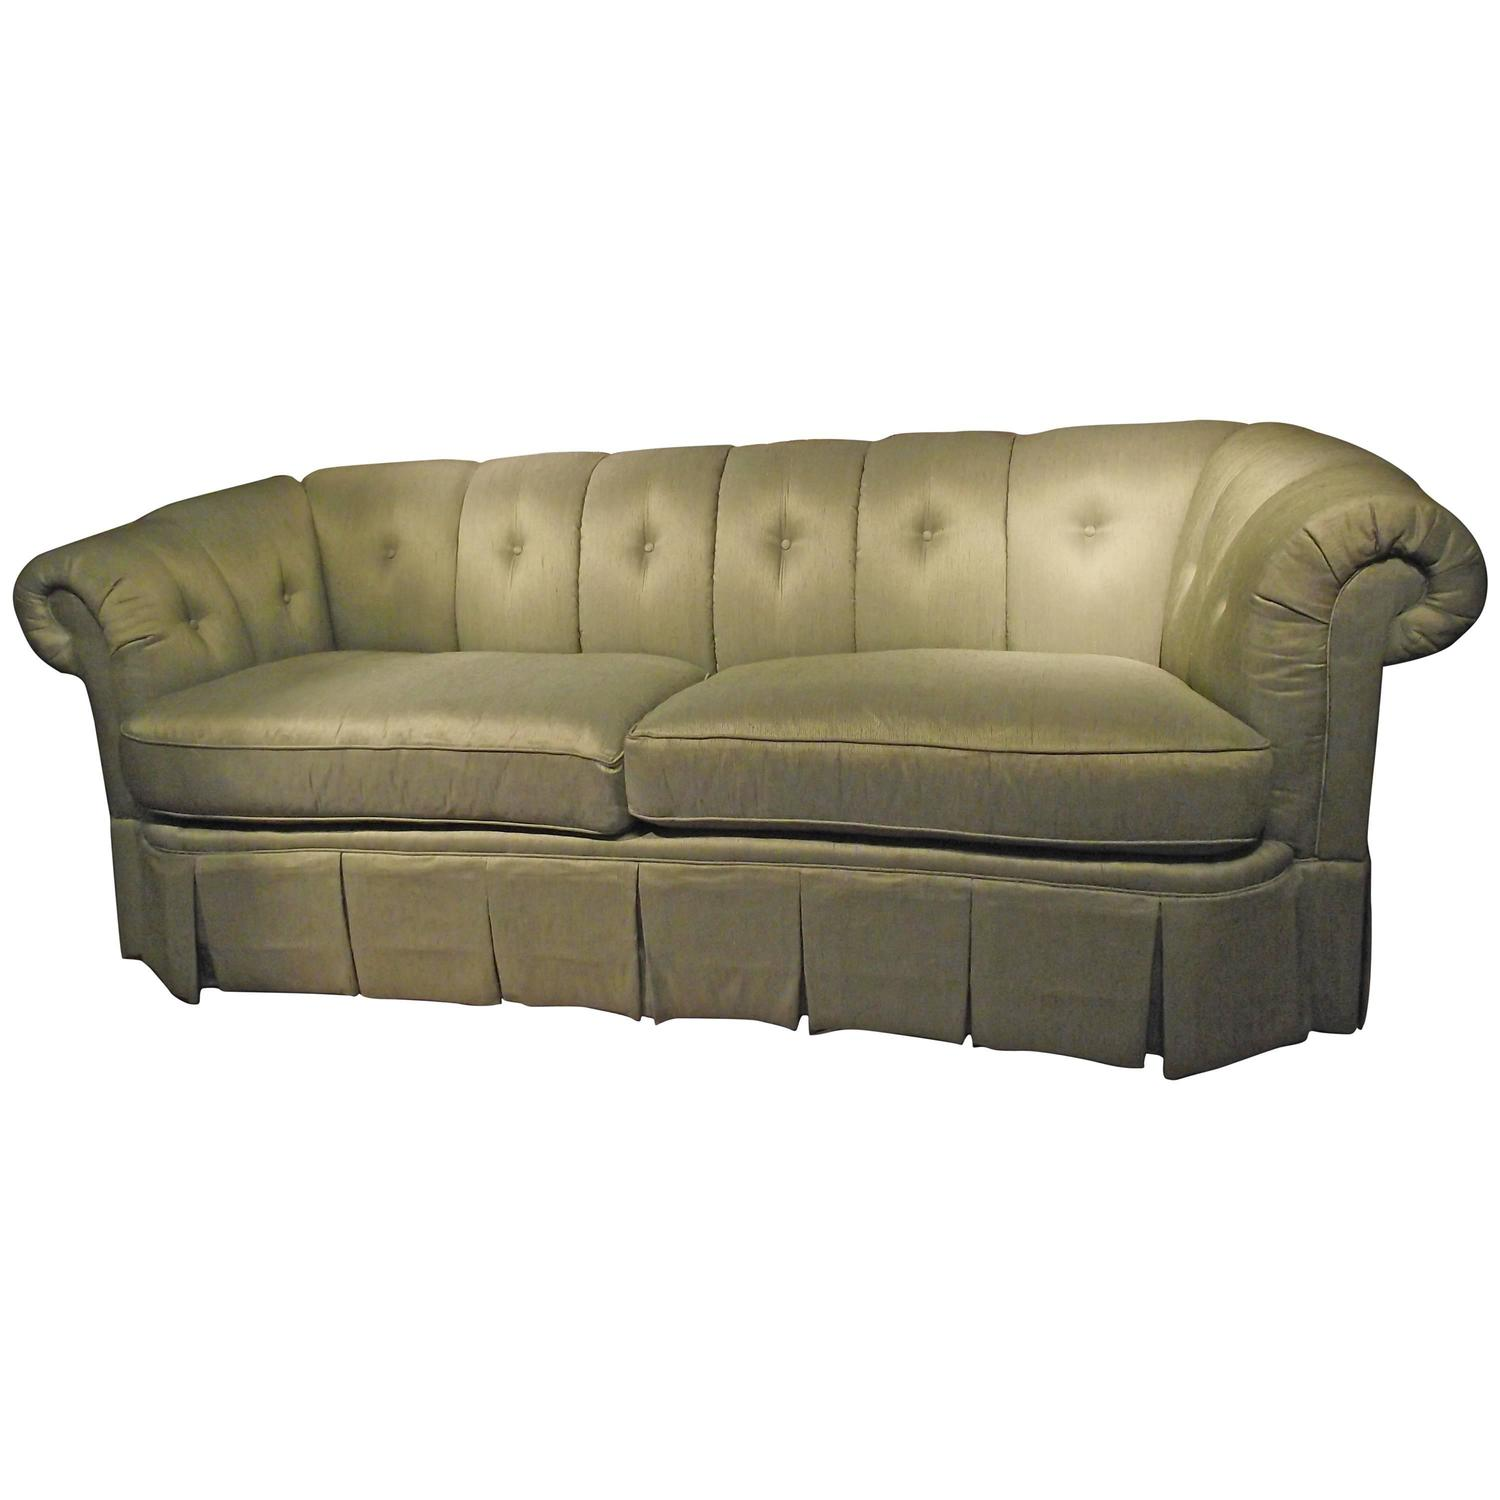 Chesterfield Sofa Covered In Green Upholstery Silk At 1stdibs